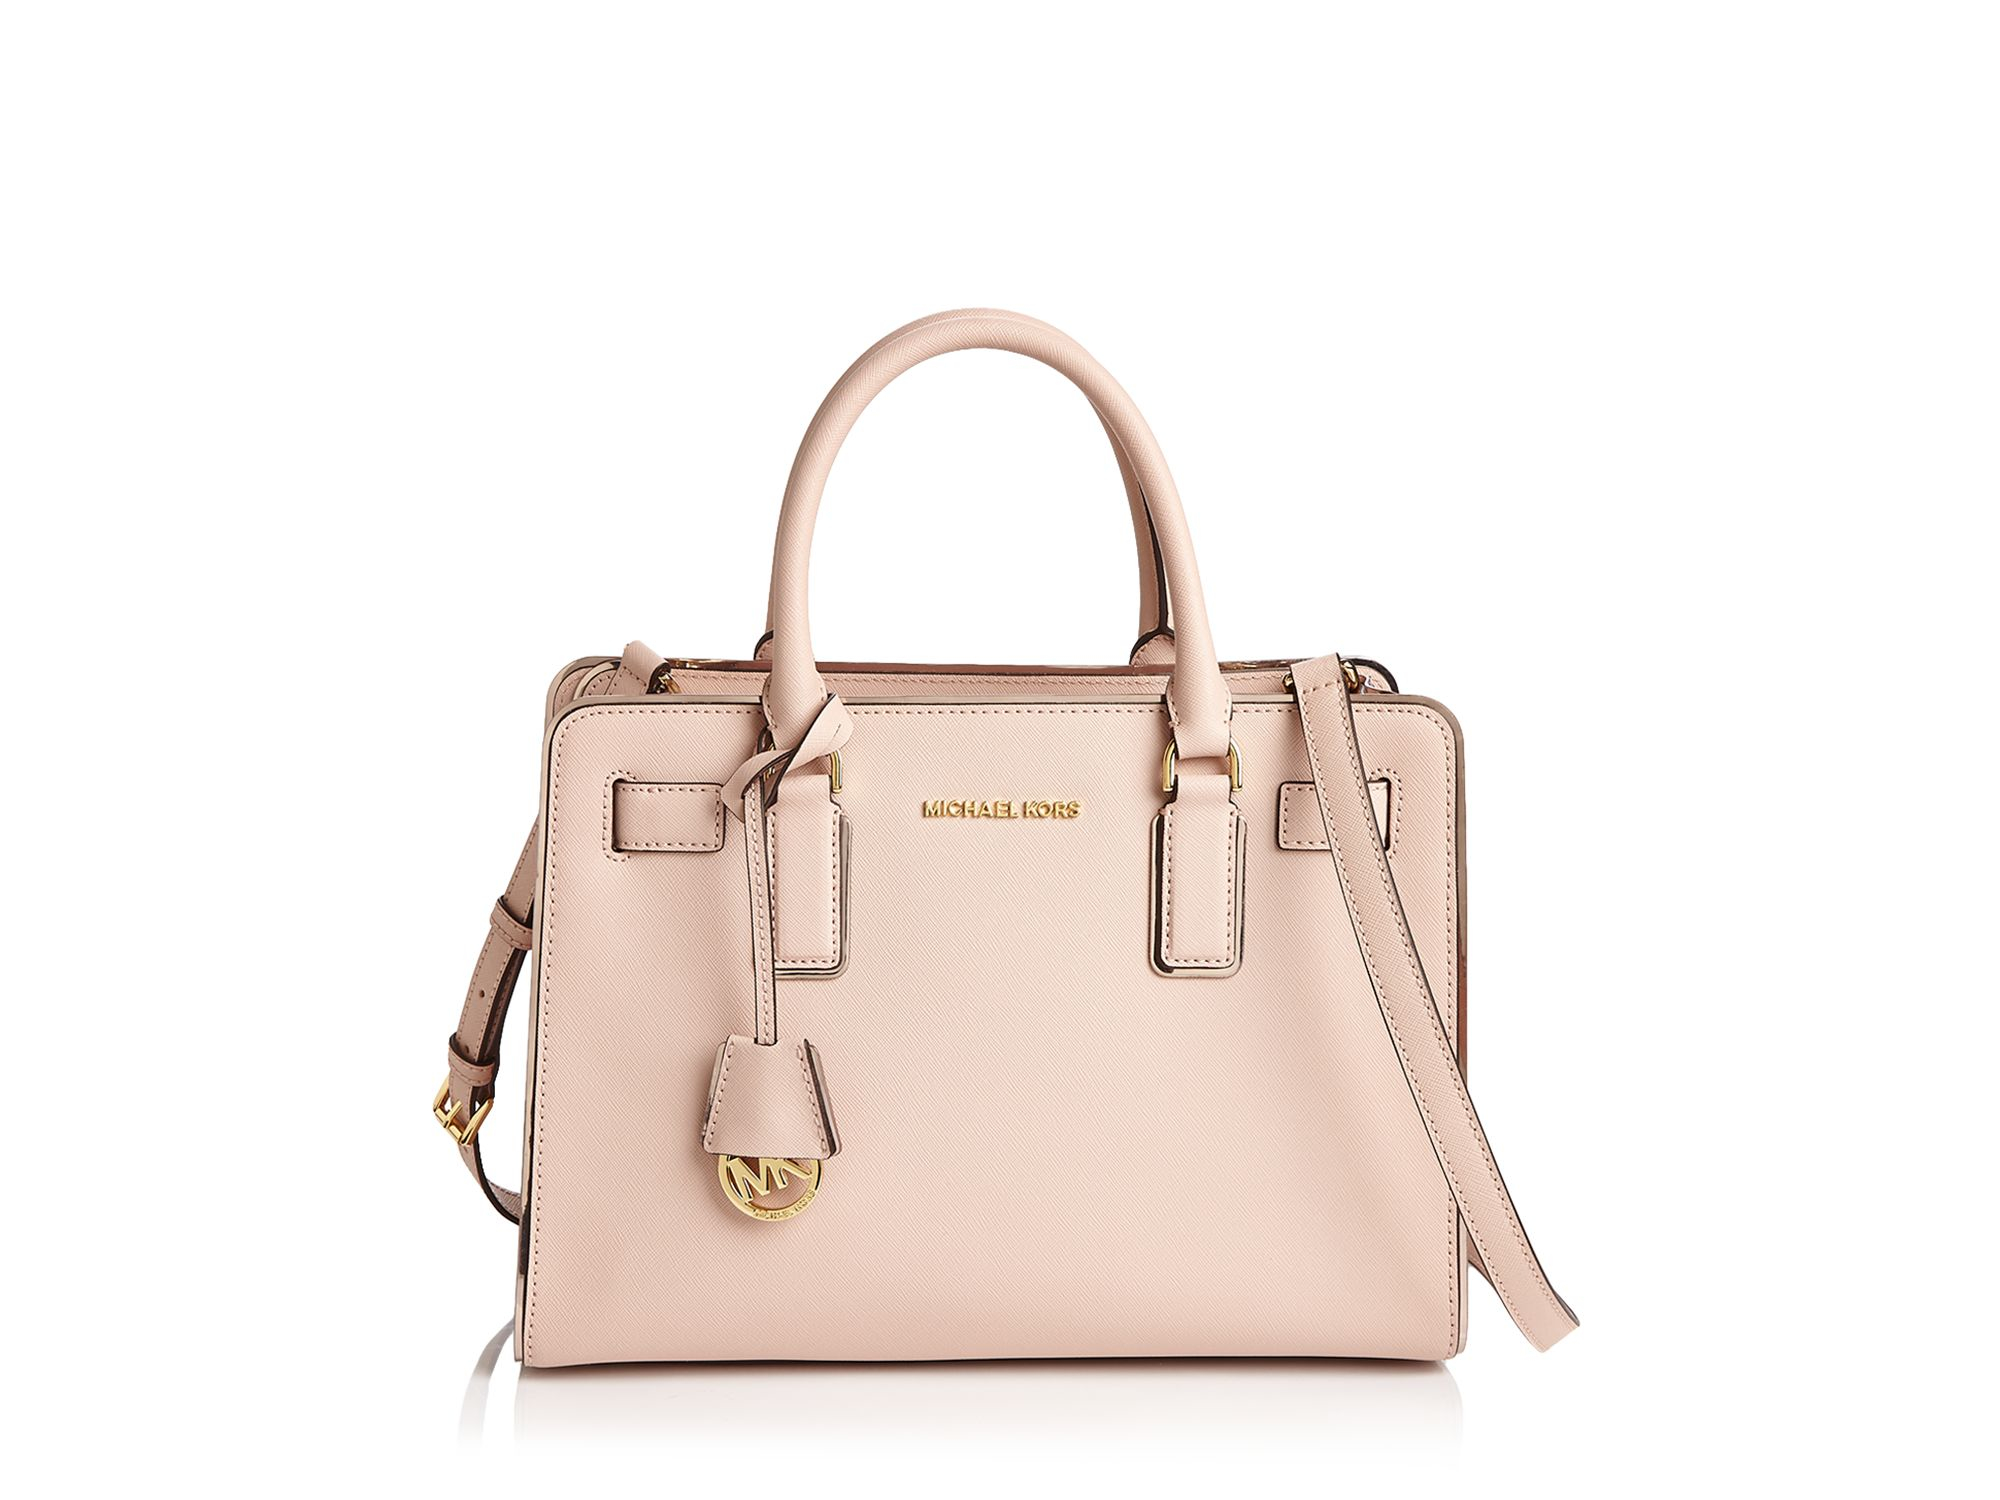 75881efb6cce ... hot lyst michael michael kors dillon saffiano leather satchel in pink  4cdc3 2883f ...